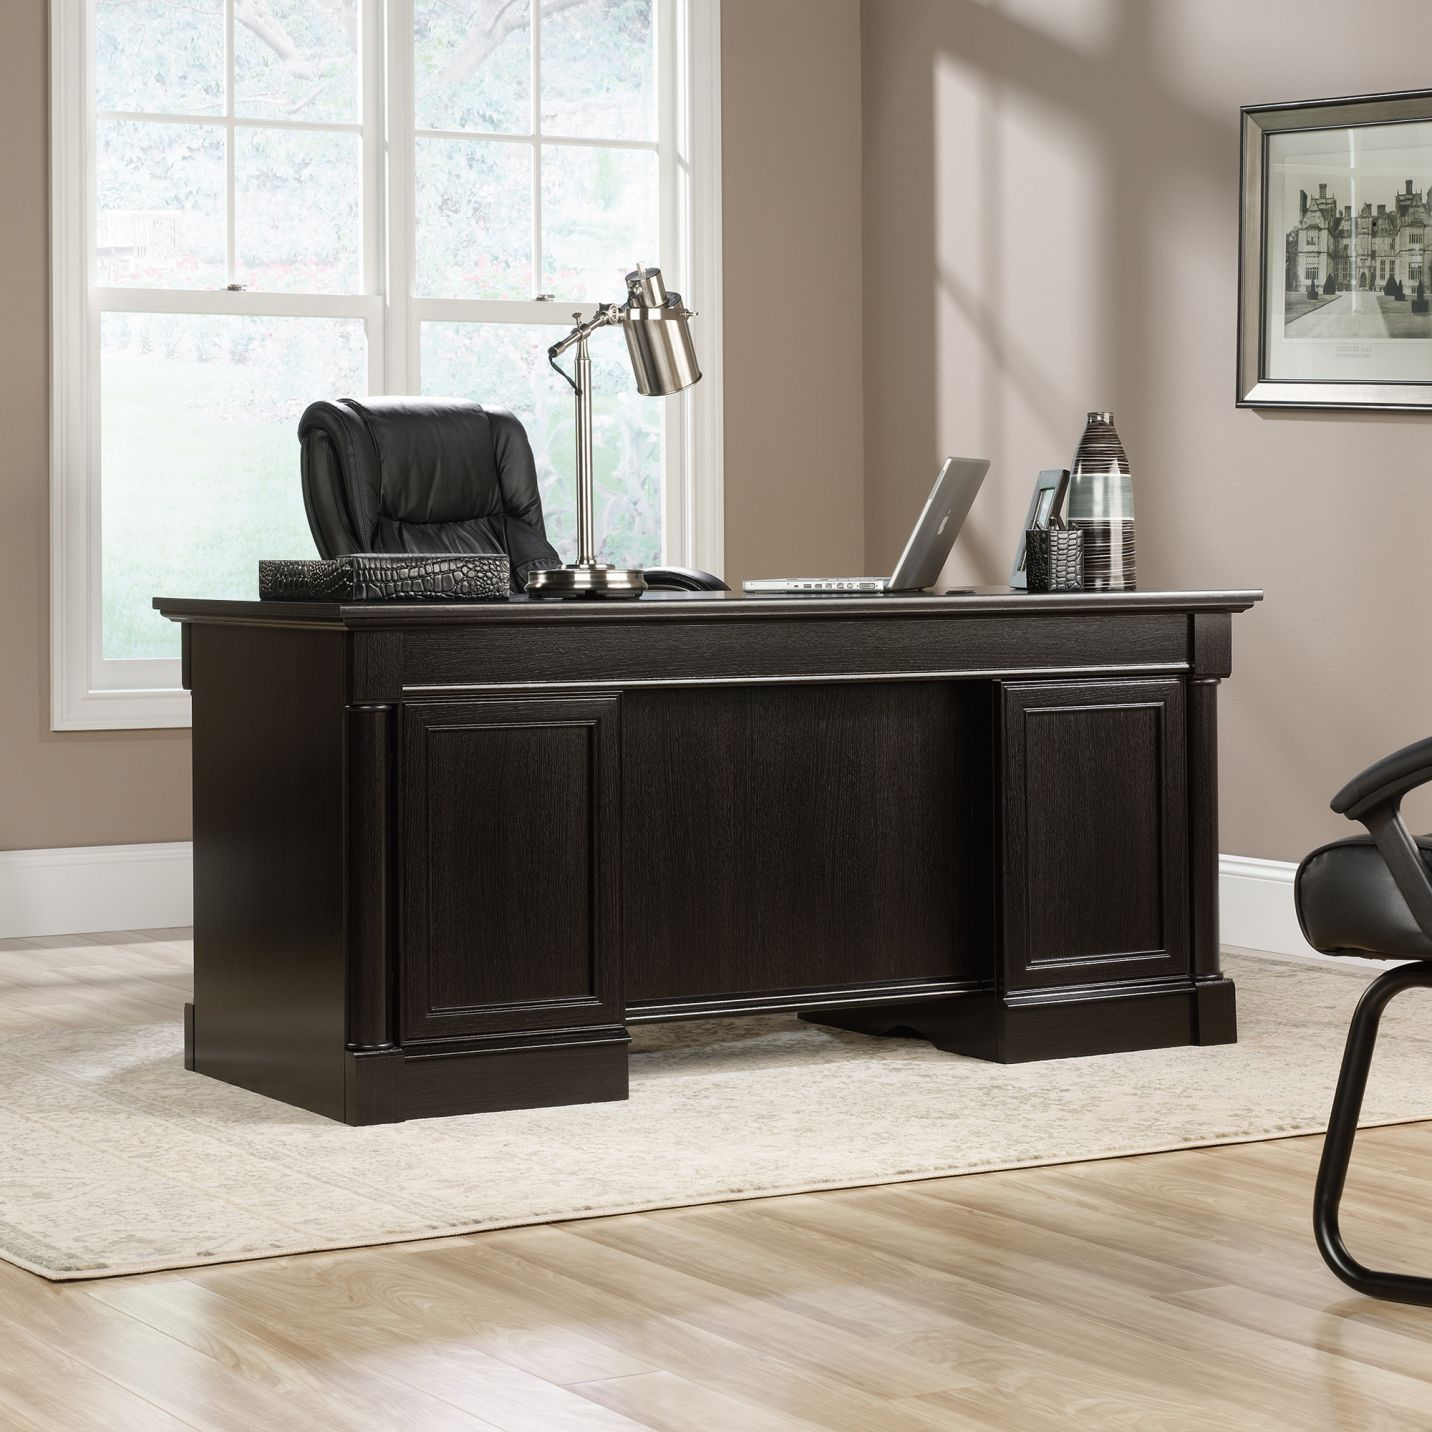 Executive Desks Clearance Home Office Furniture Images Check More At Http Michael Malarkey